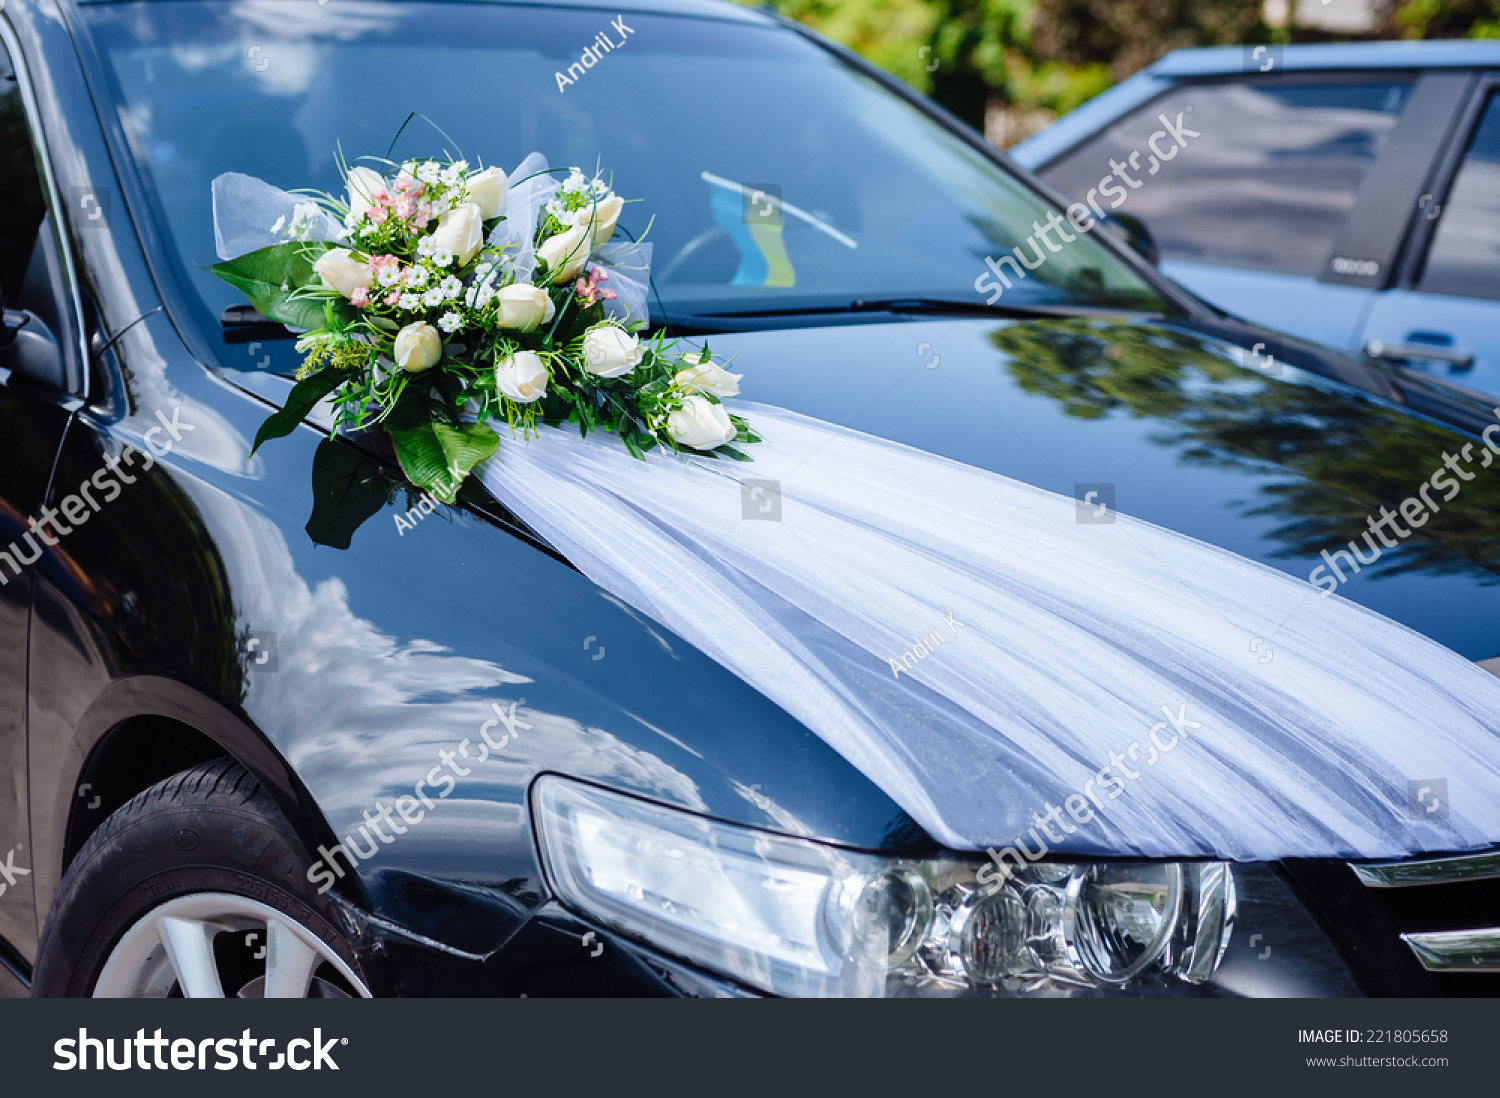 Wedding Car Decoration With Flowers  from image.shutterstock.com